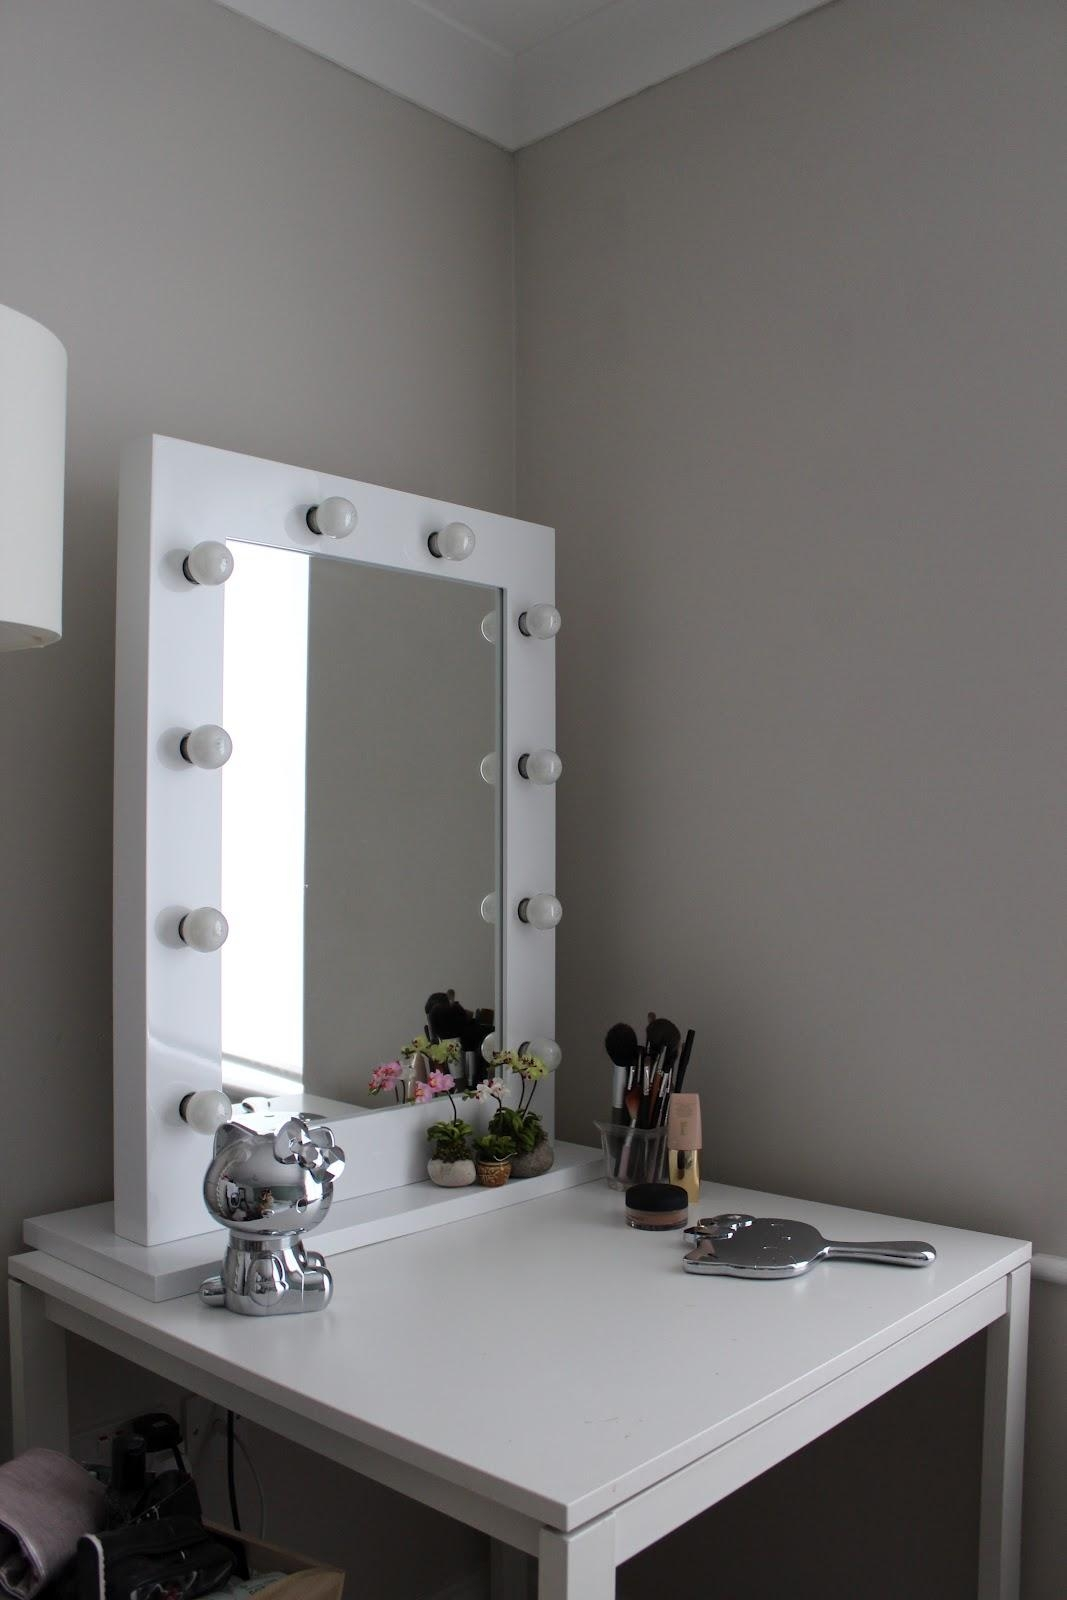 Vanity Table With Lights Around Mirror For Sale | Creative Vanity With Illuminated Dressing Table Mirror (View 20 of 20)